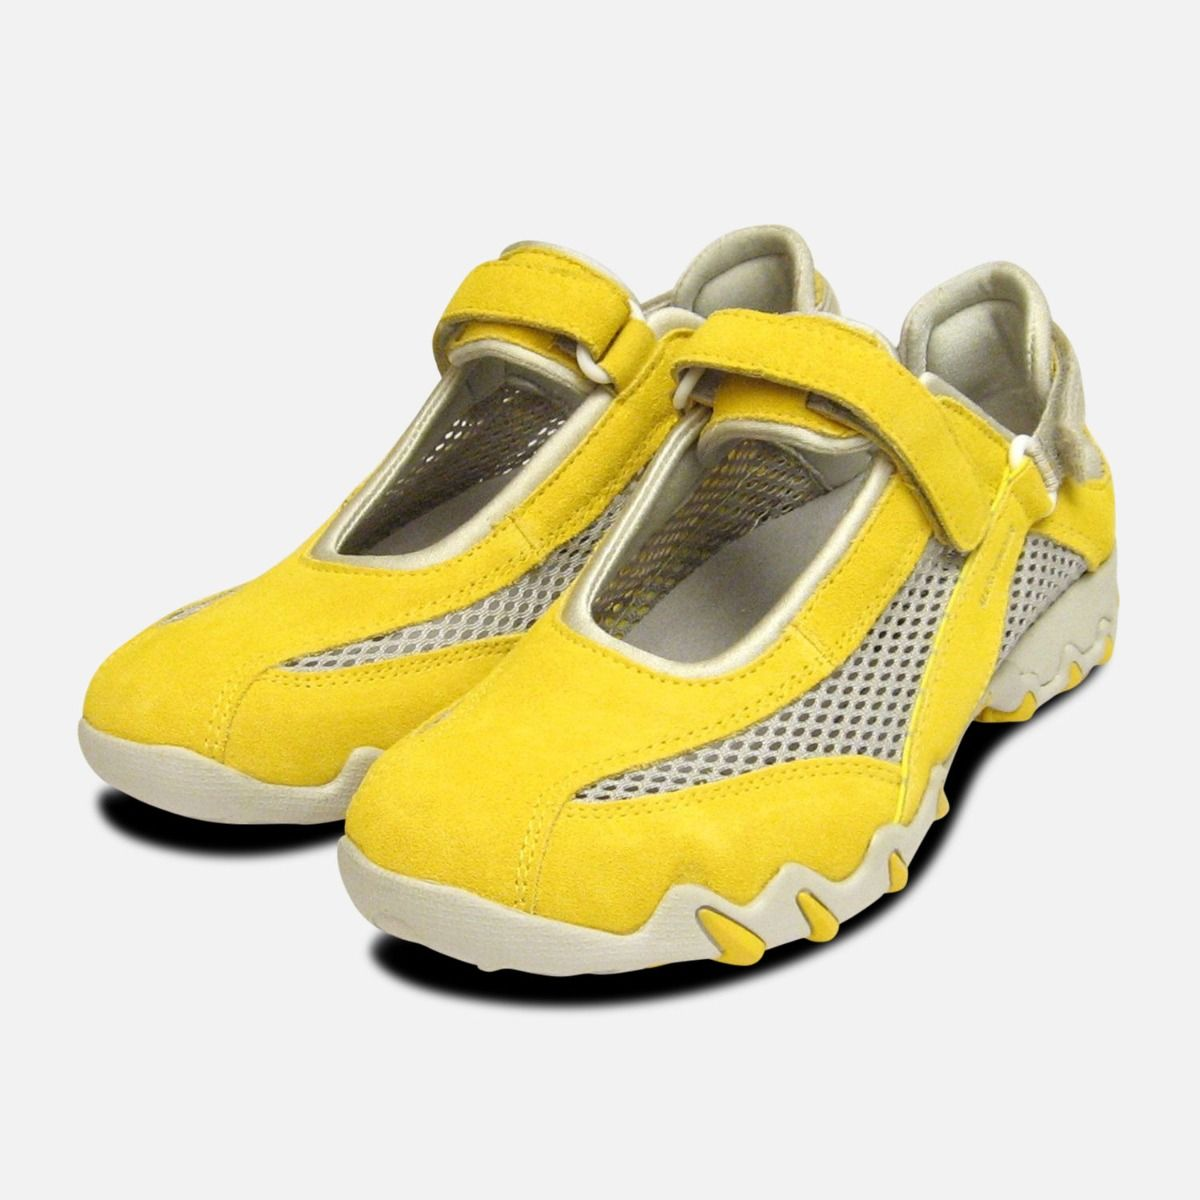 finest selection 31d07 fccc7 Niro in Yellow Suede by Mephisto Ladies Designer Sneaker Trainers